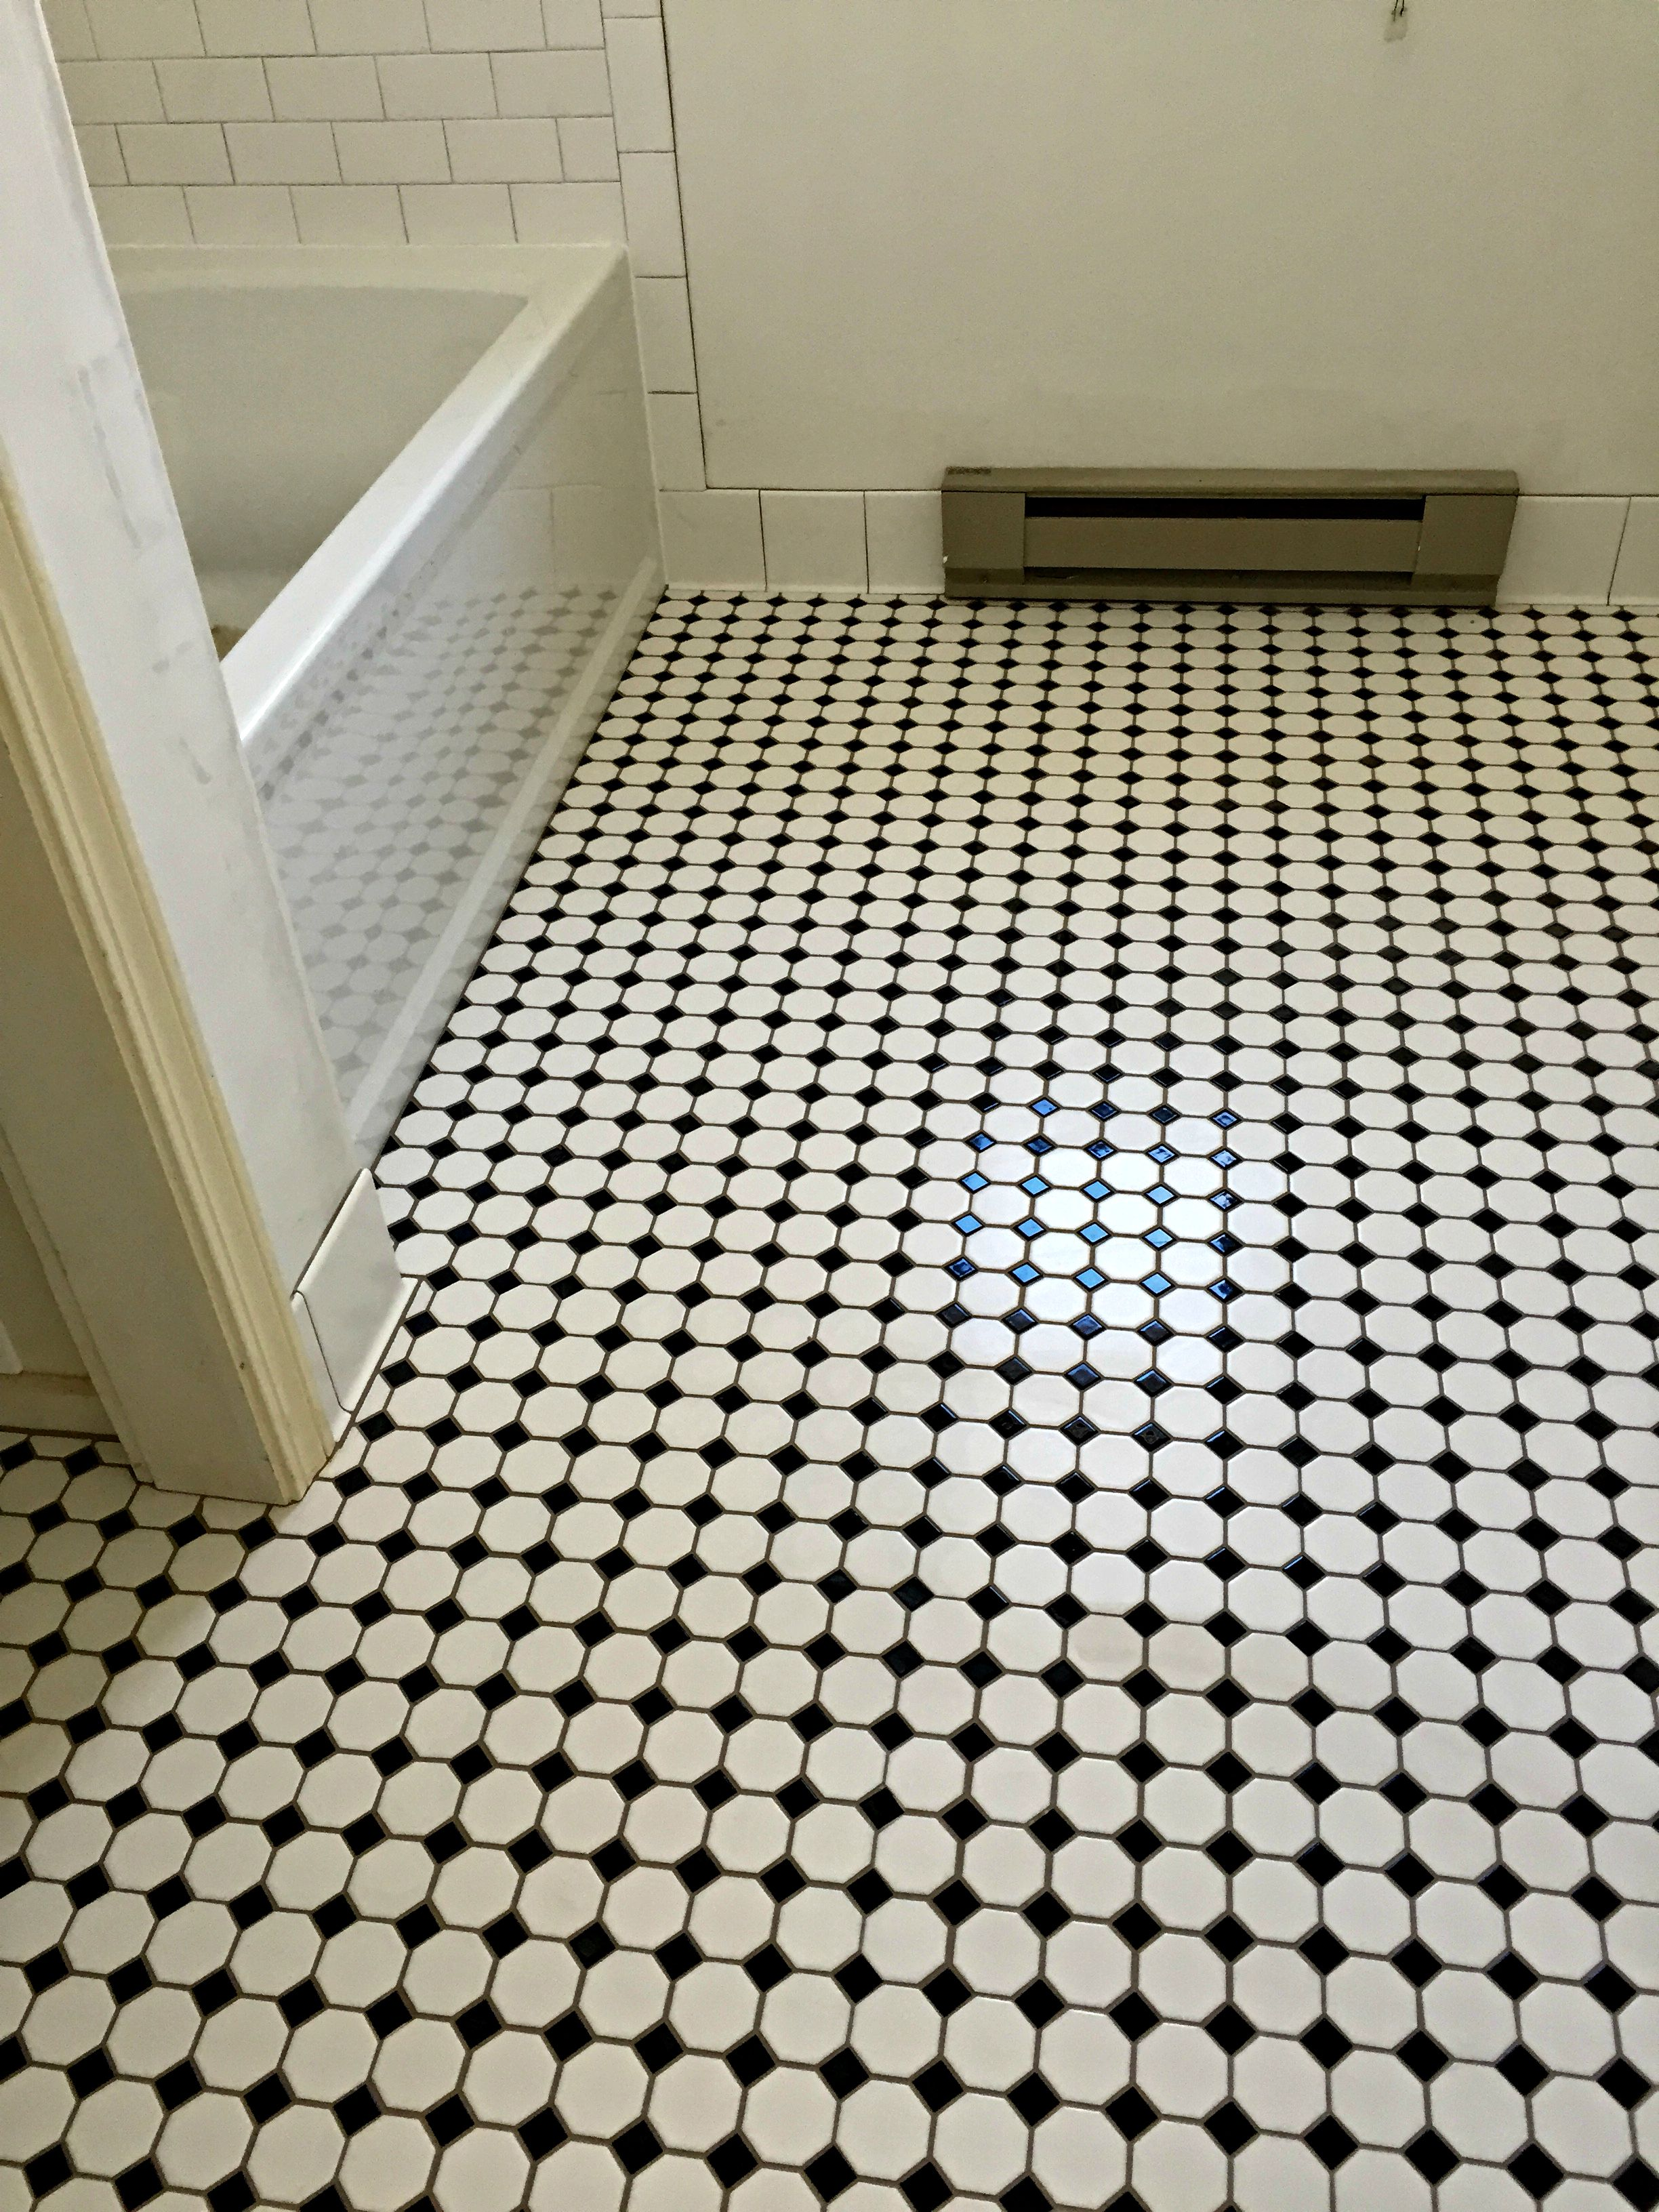 How To Get Grout Off Tiles Mosaic   Tile Design Ideas